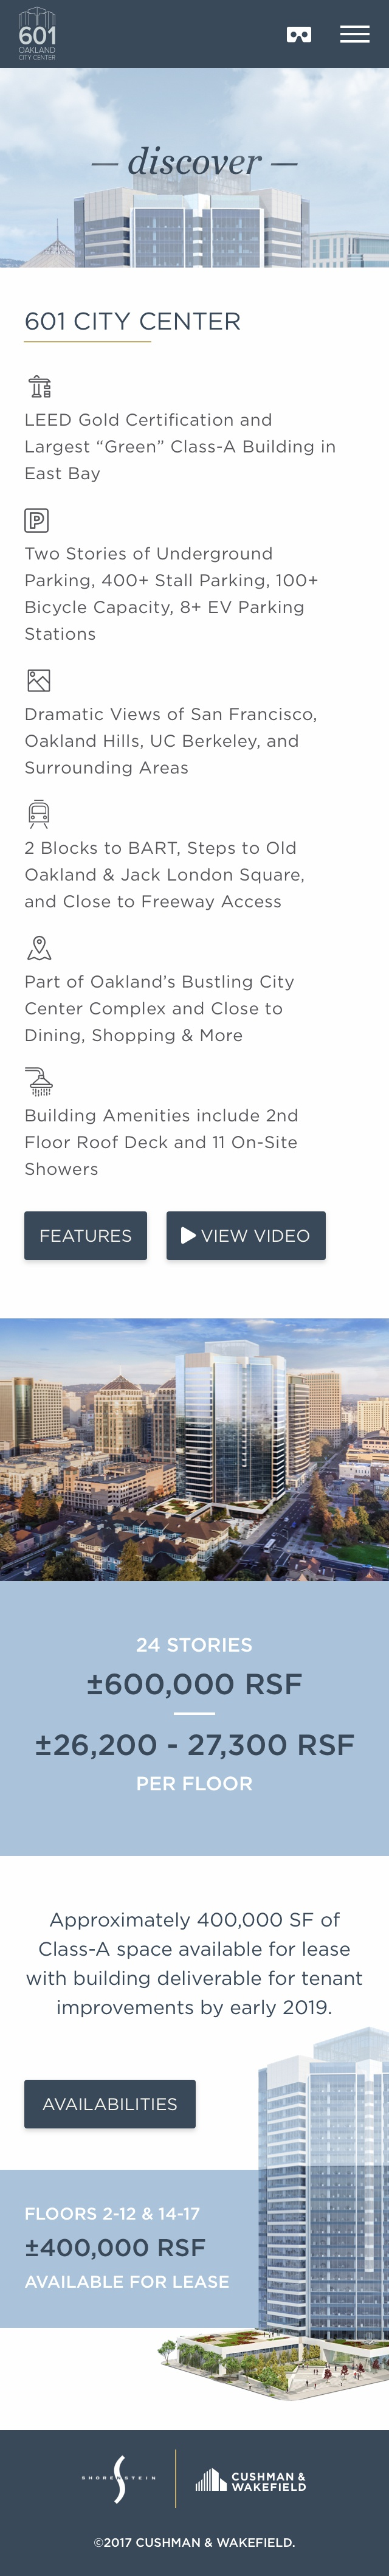 601citycenter discoverpage mobile